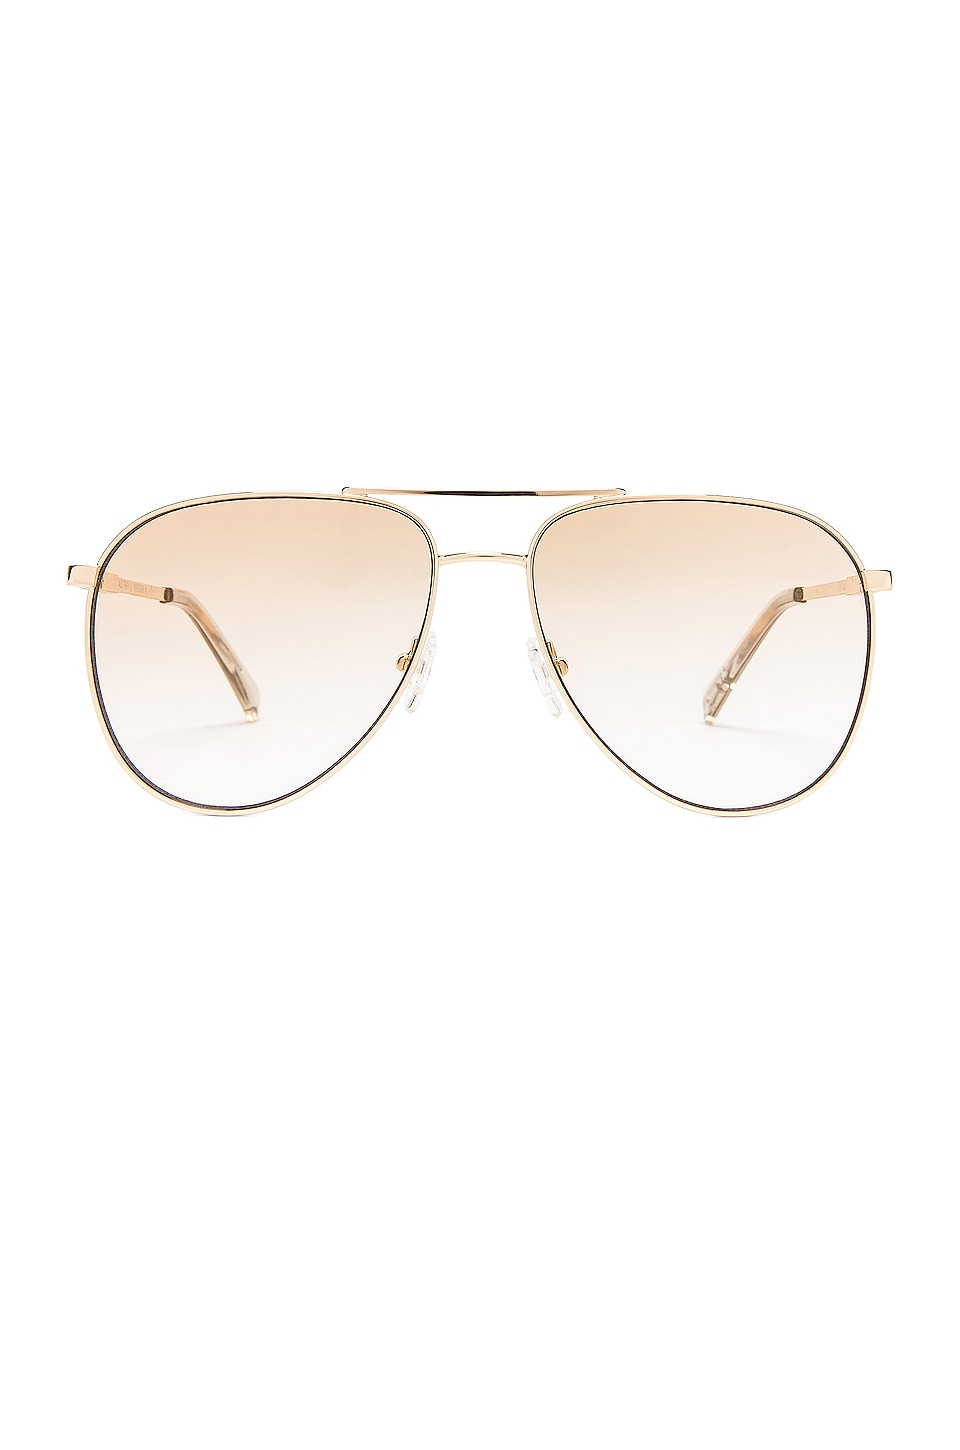 Le Specs Road Trip in Bright Gold & Tan Gradient Flash Mirror